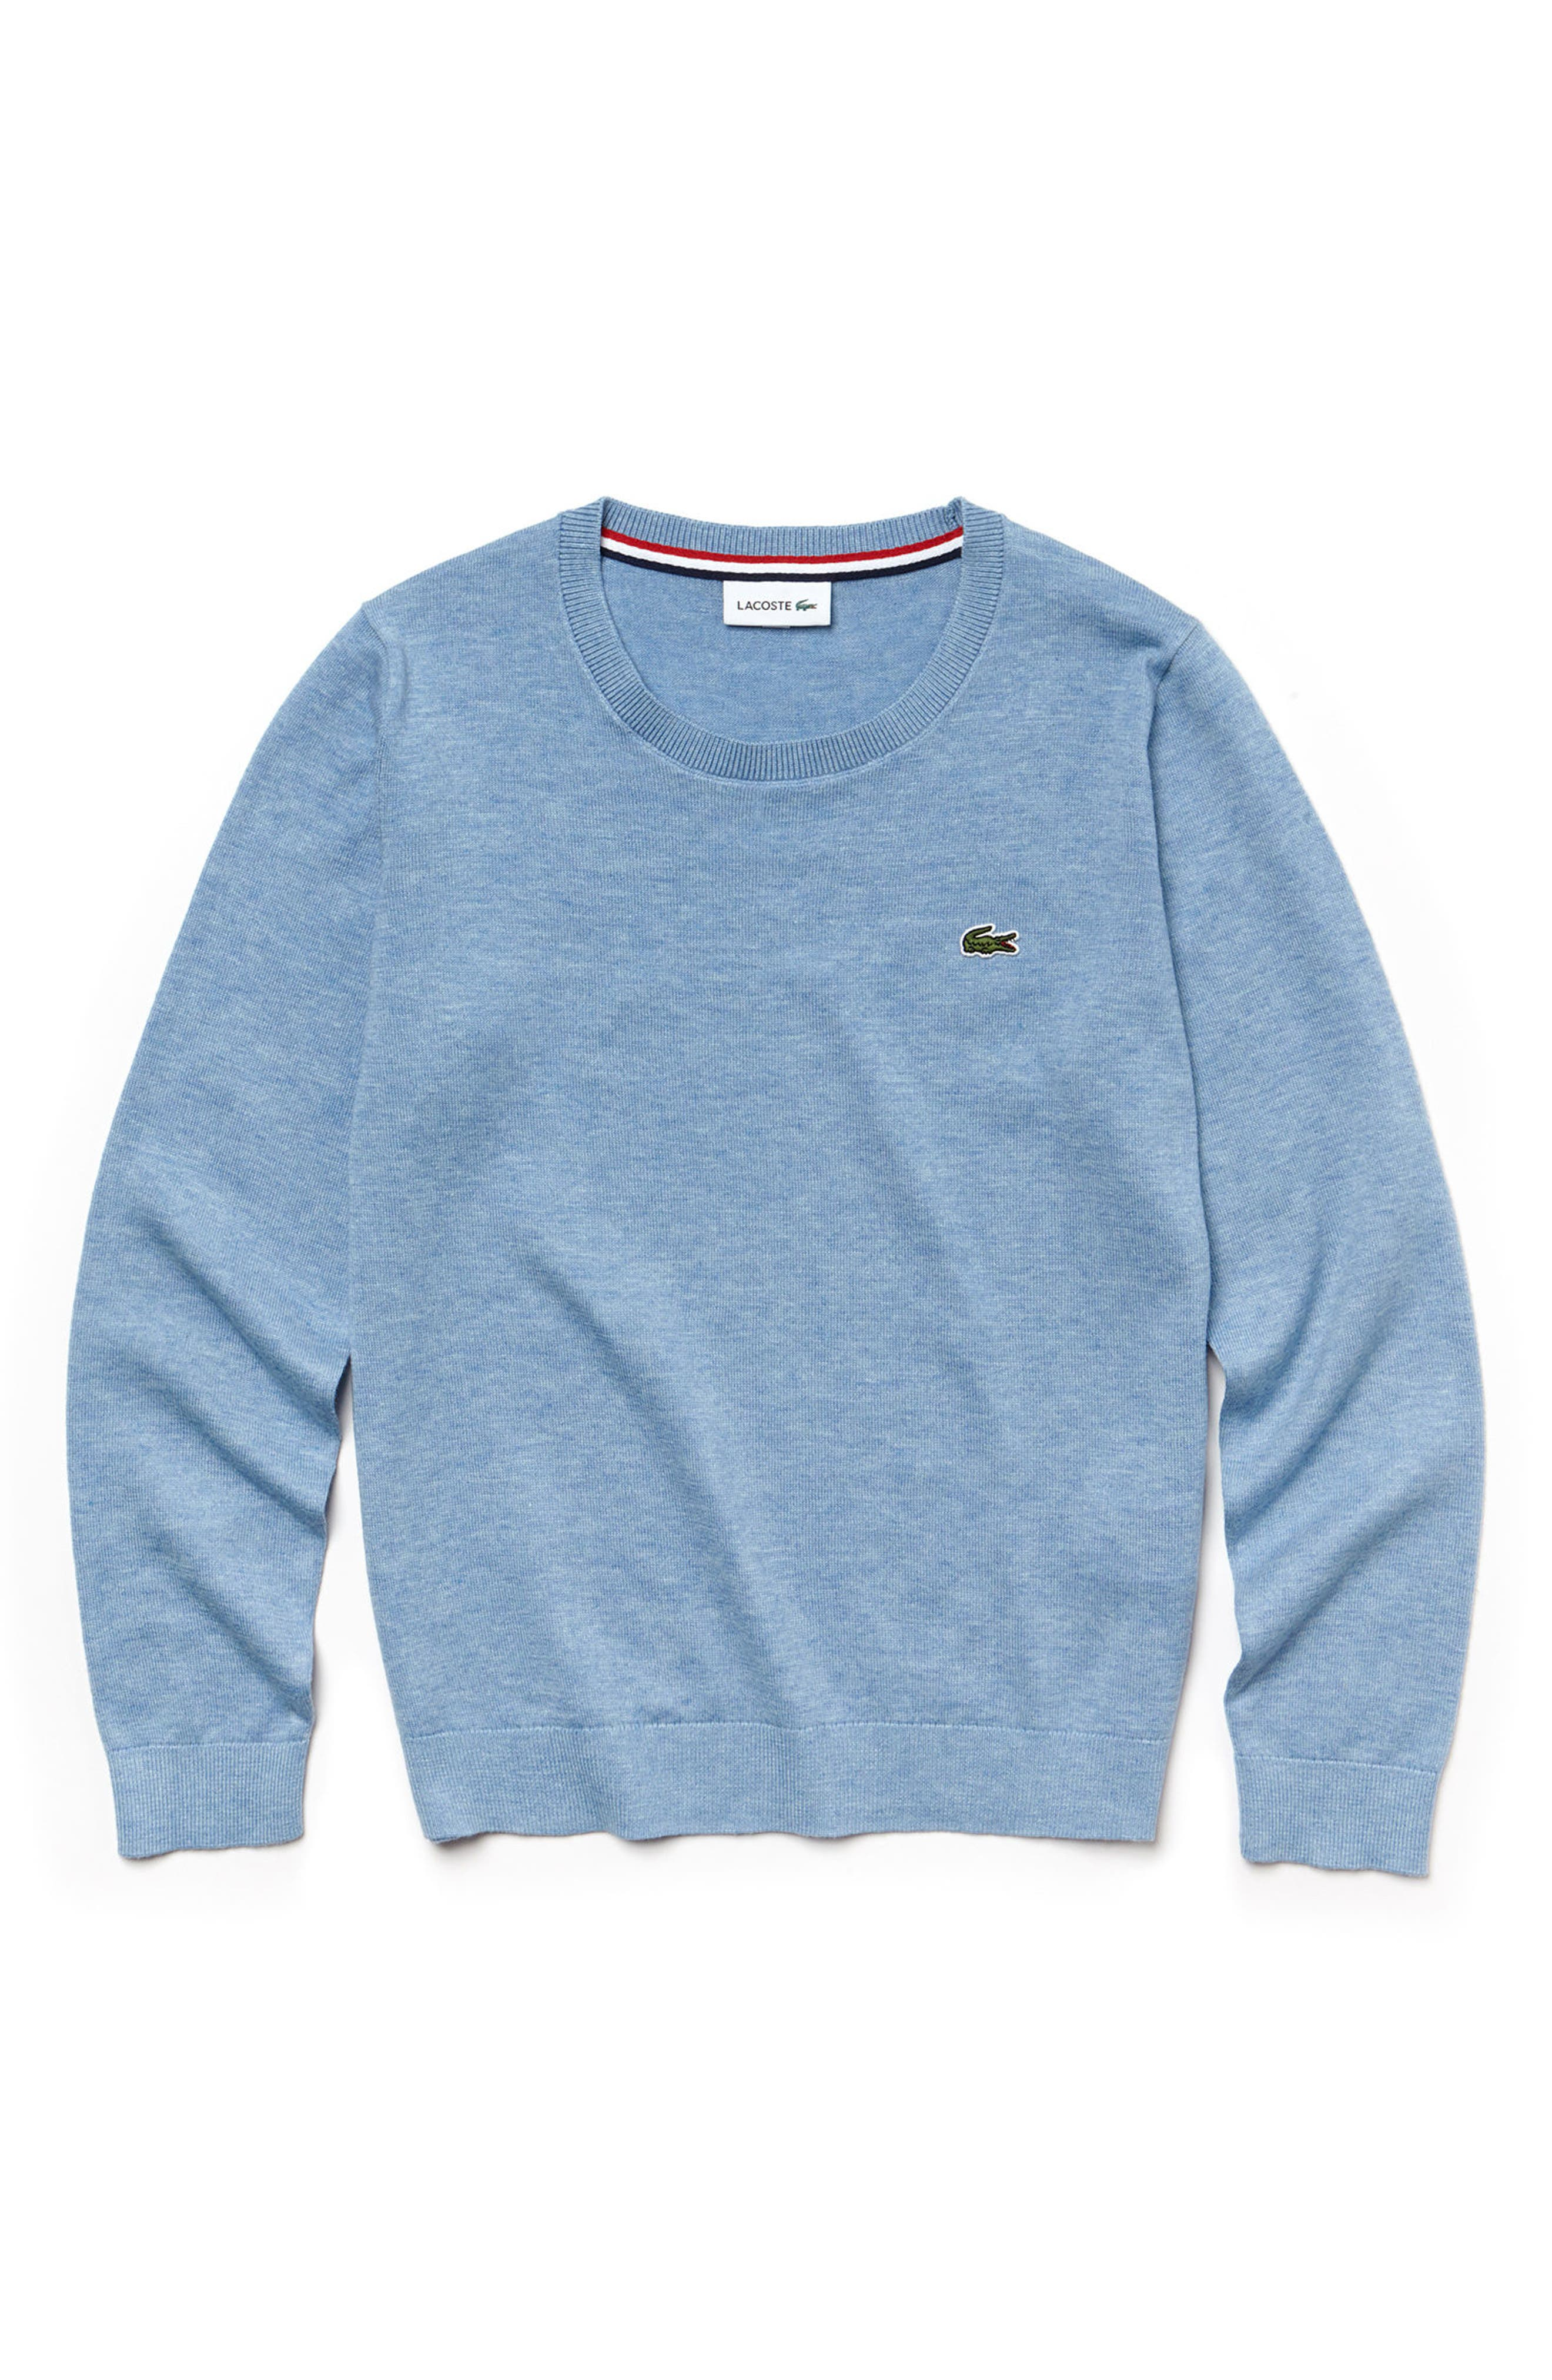 Classic Jersey Crewneck Sweater,                         Main,                         color, Dragonfly Blue